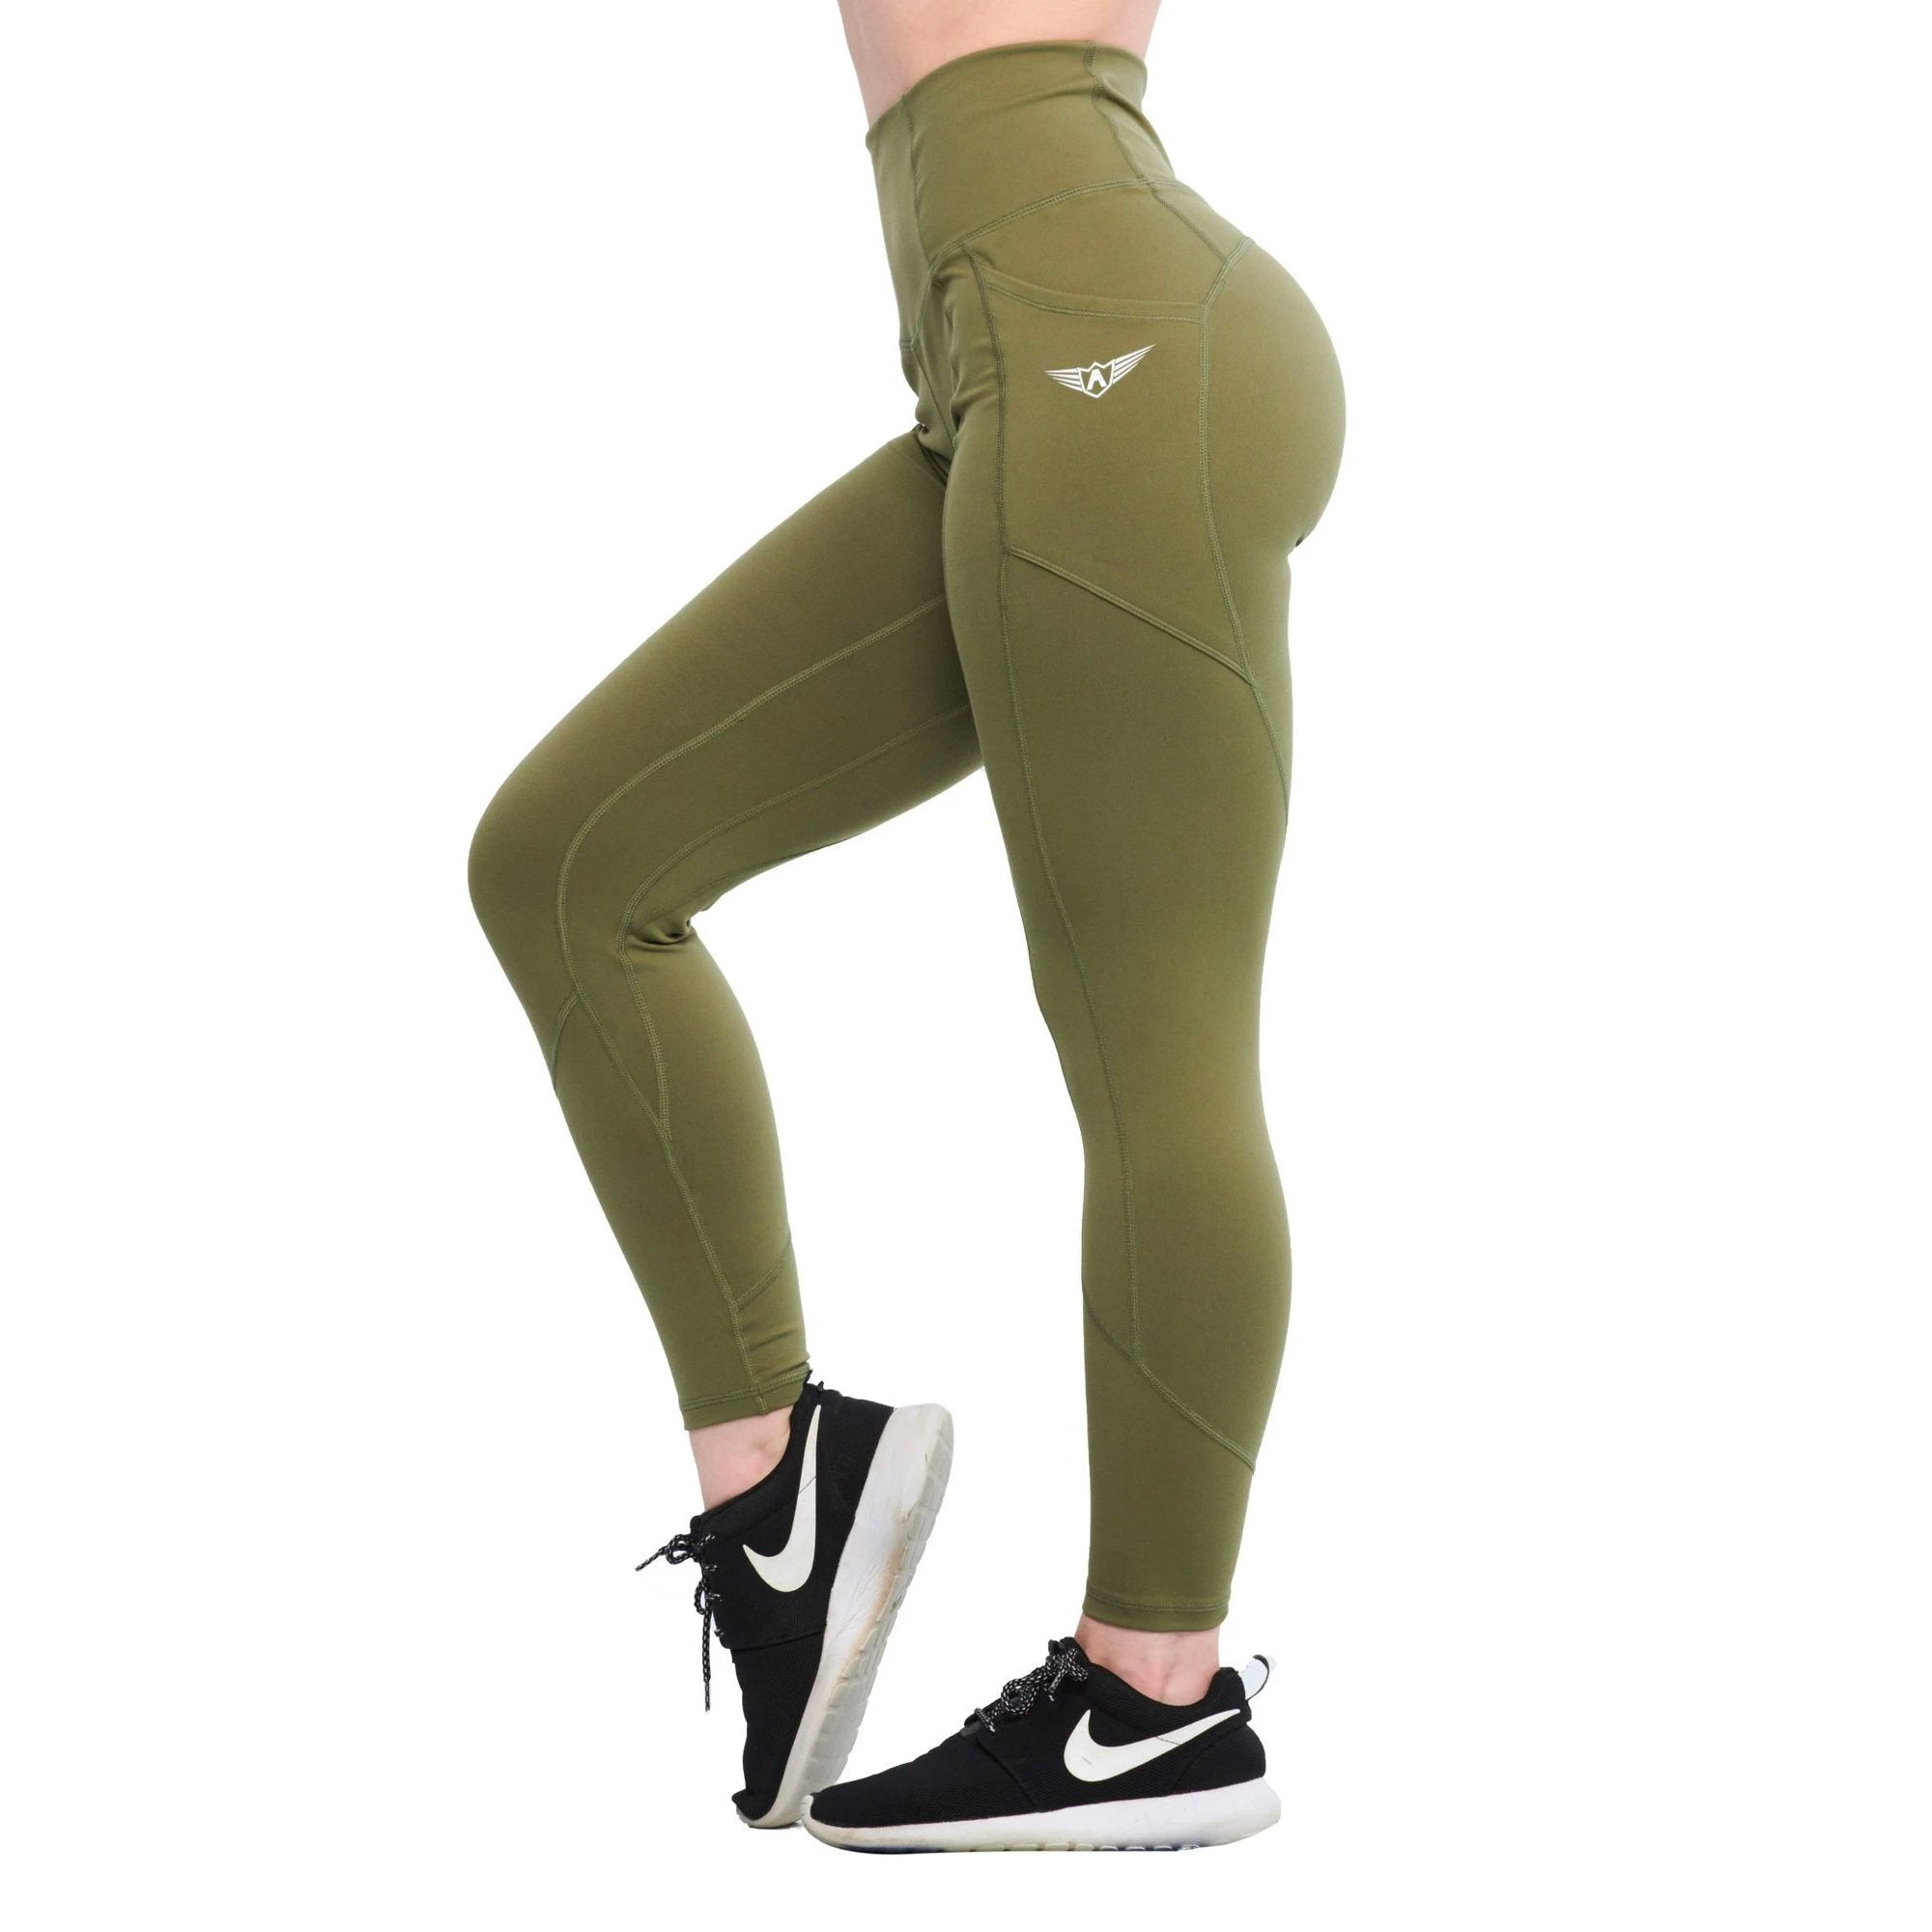 Olive Green SUPER FLEX HIGH WAIST LEGGINGS With Pockets